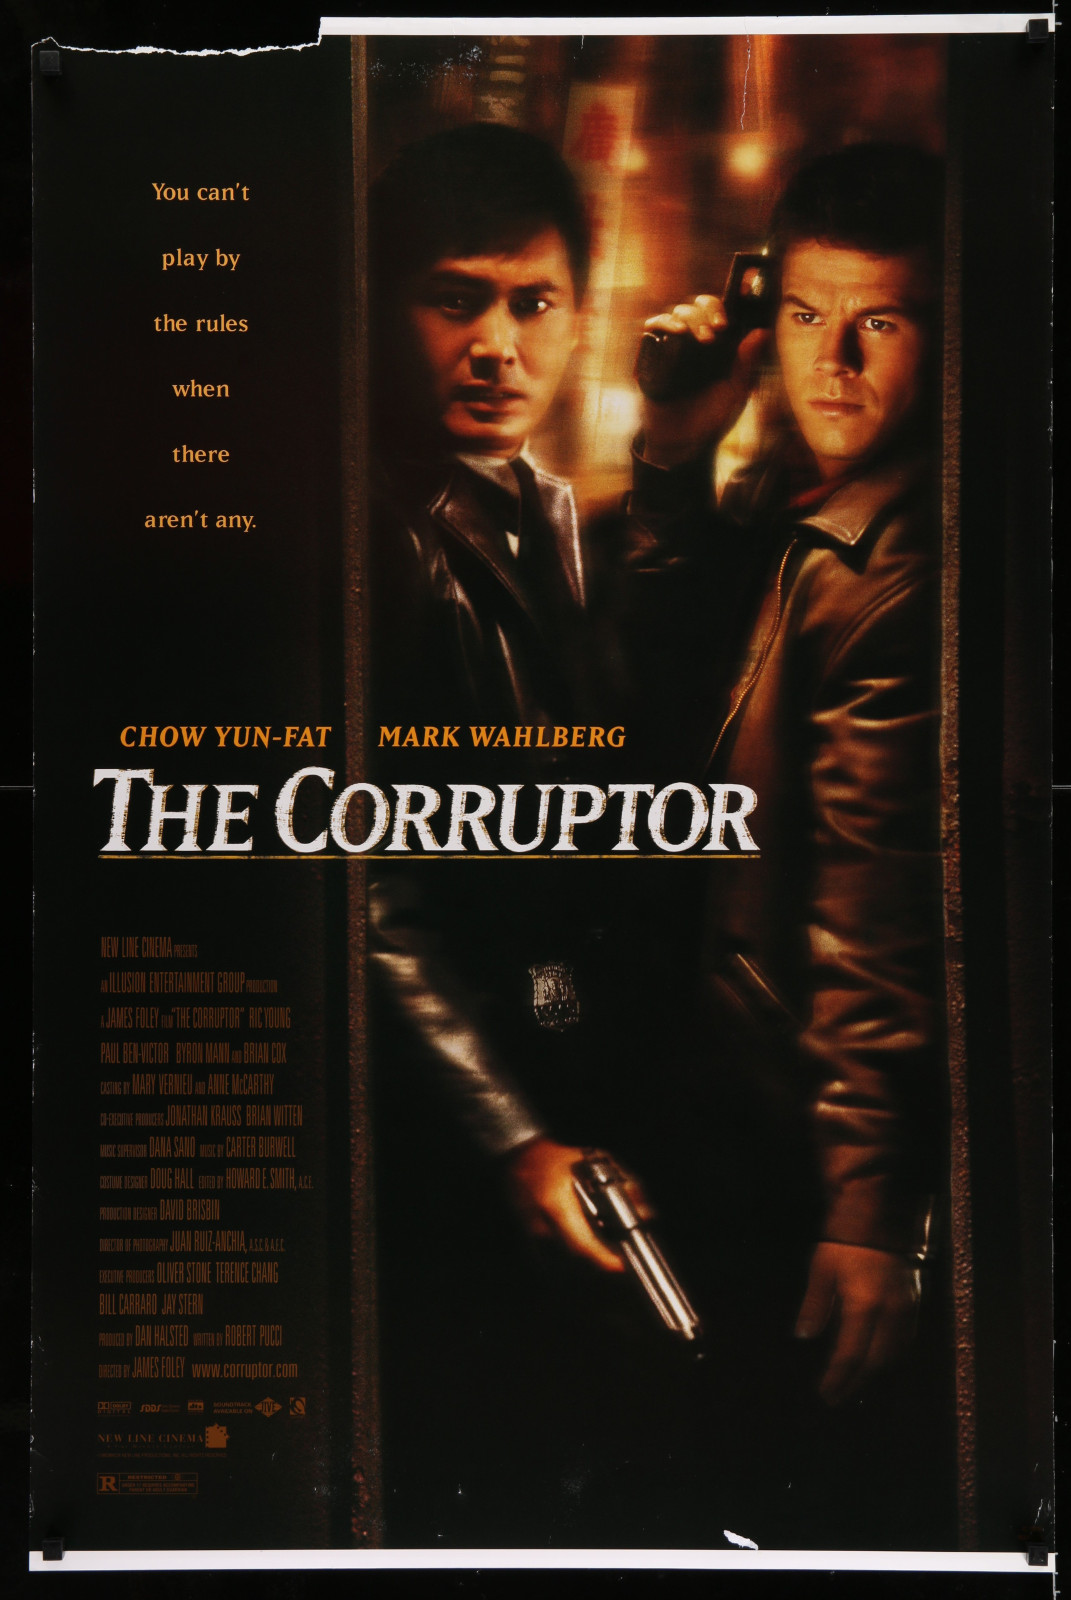 The Corruptor 2A422 A Part Of A Lot 19 Unfolded Mostly Double-Sided 27X41 One-Sheets '90S-00S Great Movie Images!